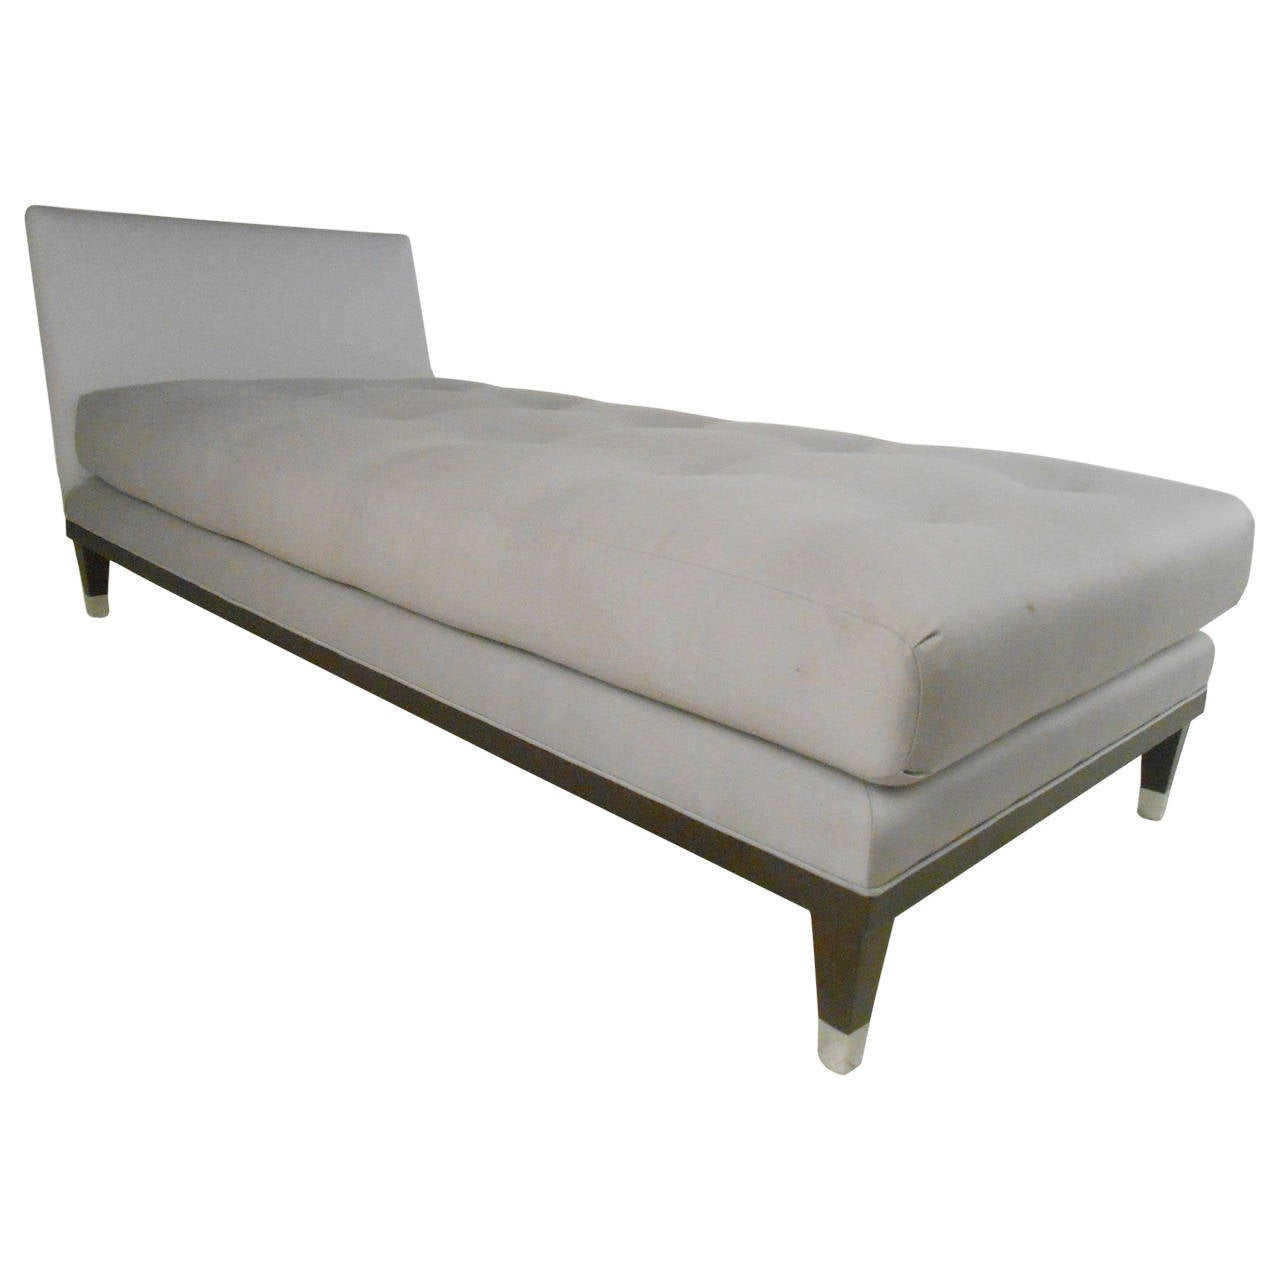 modern style chaise lounge at 1stdibs. Black Bedroom Furniture Sets. Home Design Ideas